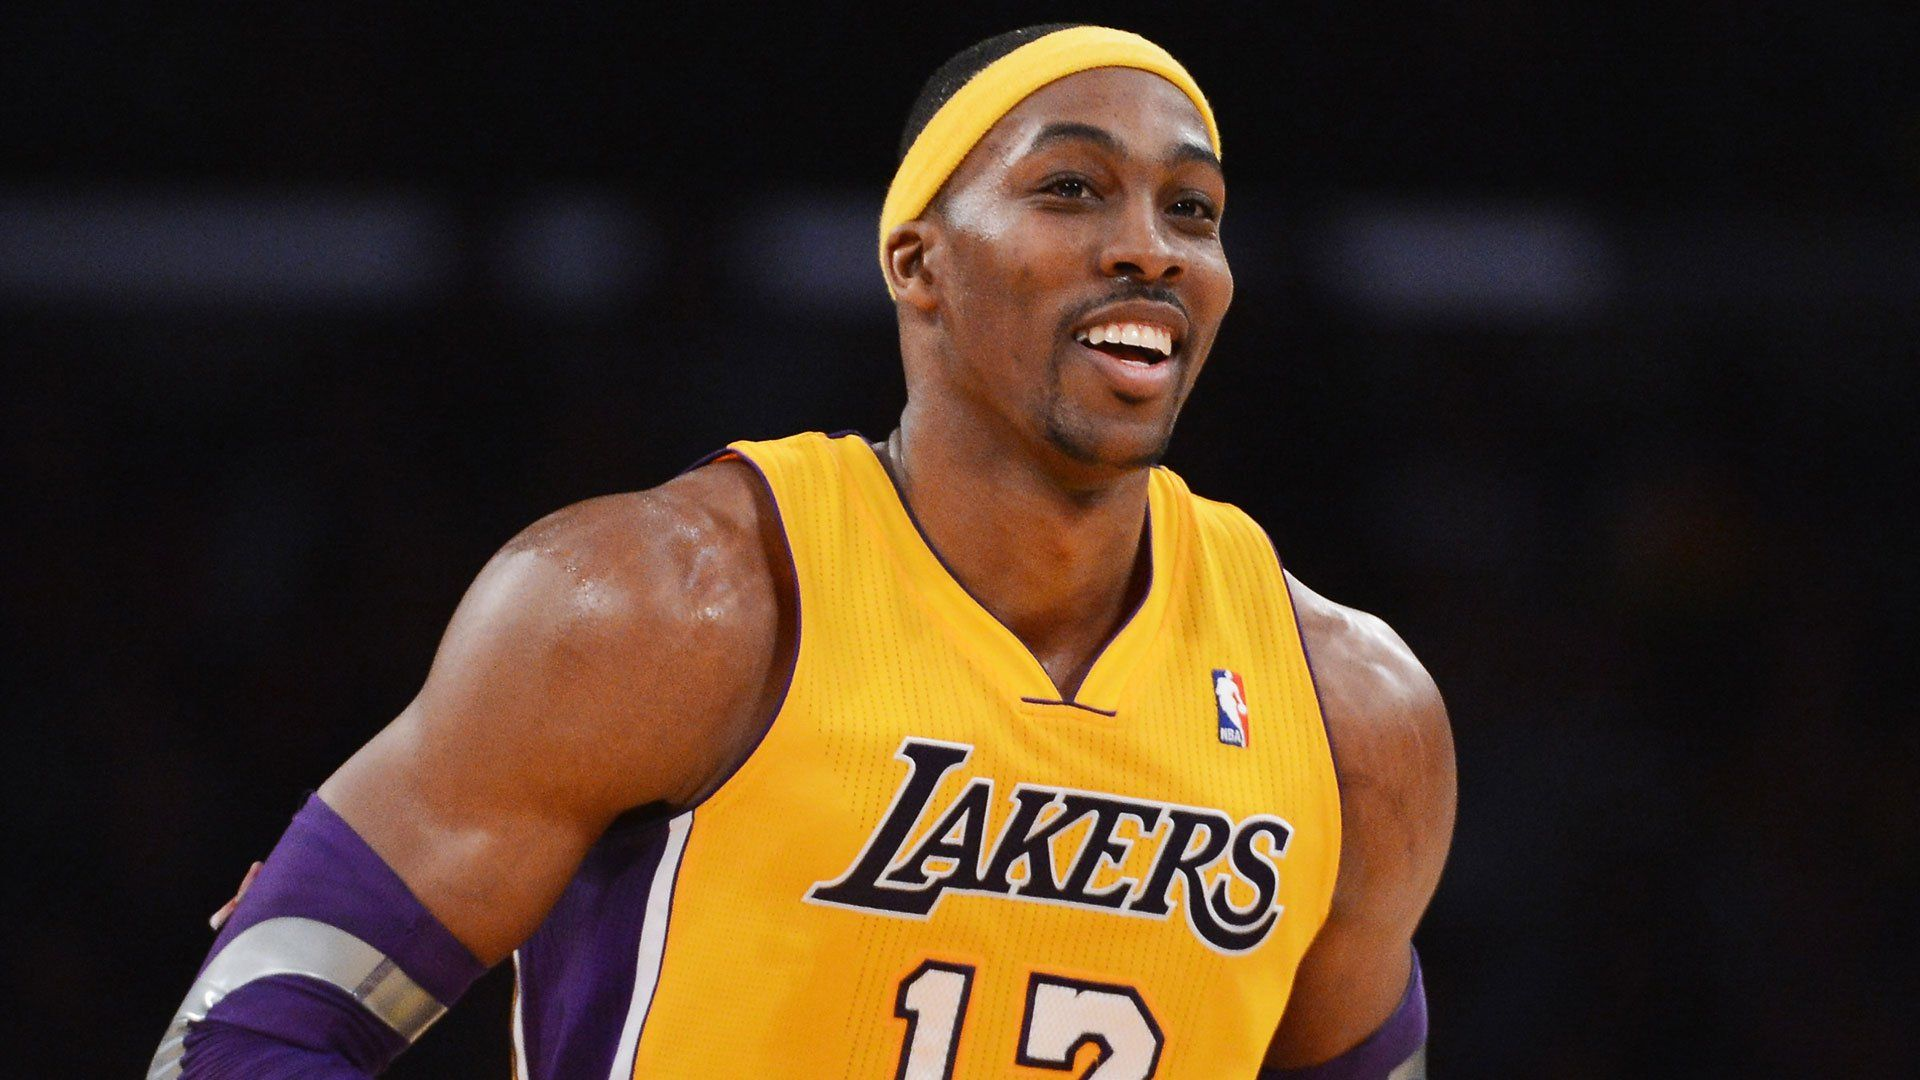 Nba Dwight Howard Might Leave La Lakers Soon Due To Salary Issues Dwight Howard La Lakers Lakers